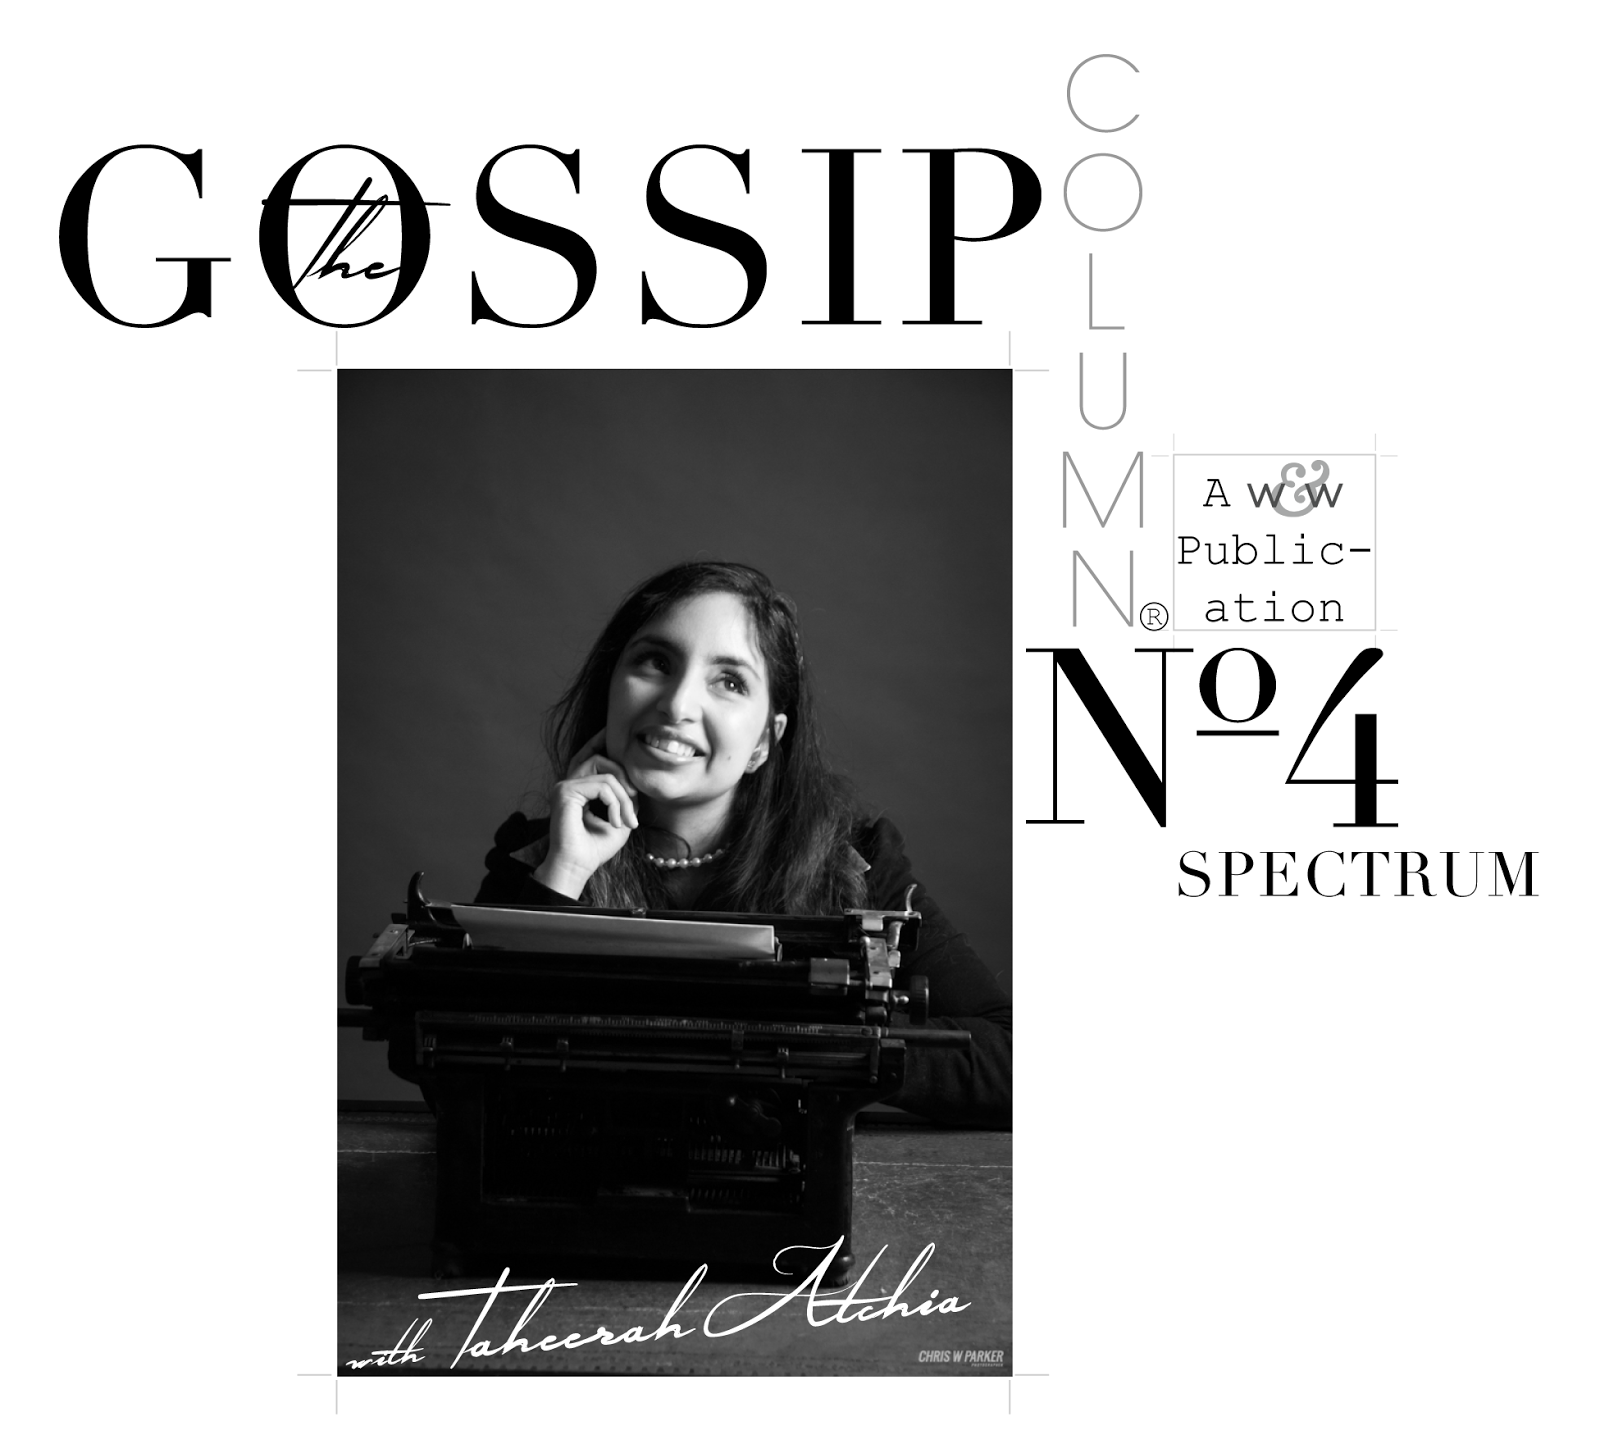 The Gossip Column - Issue 4